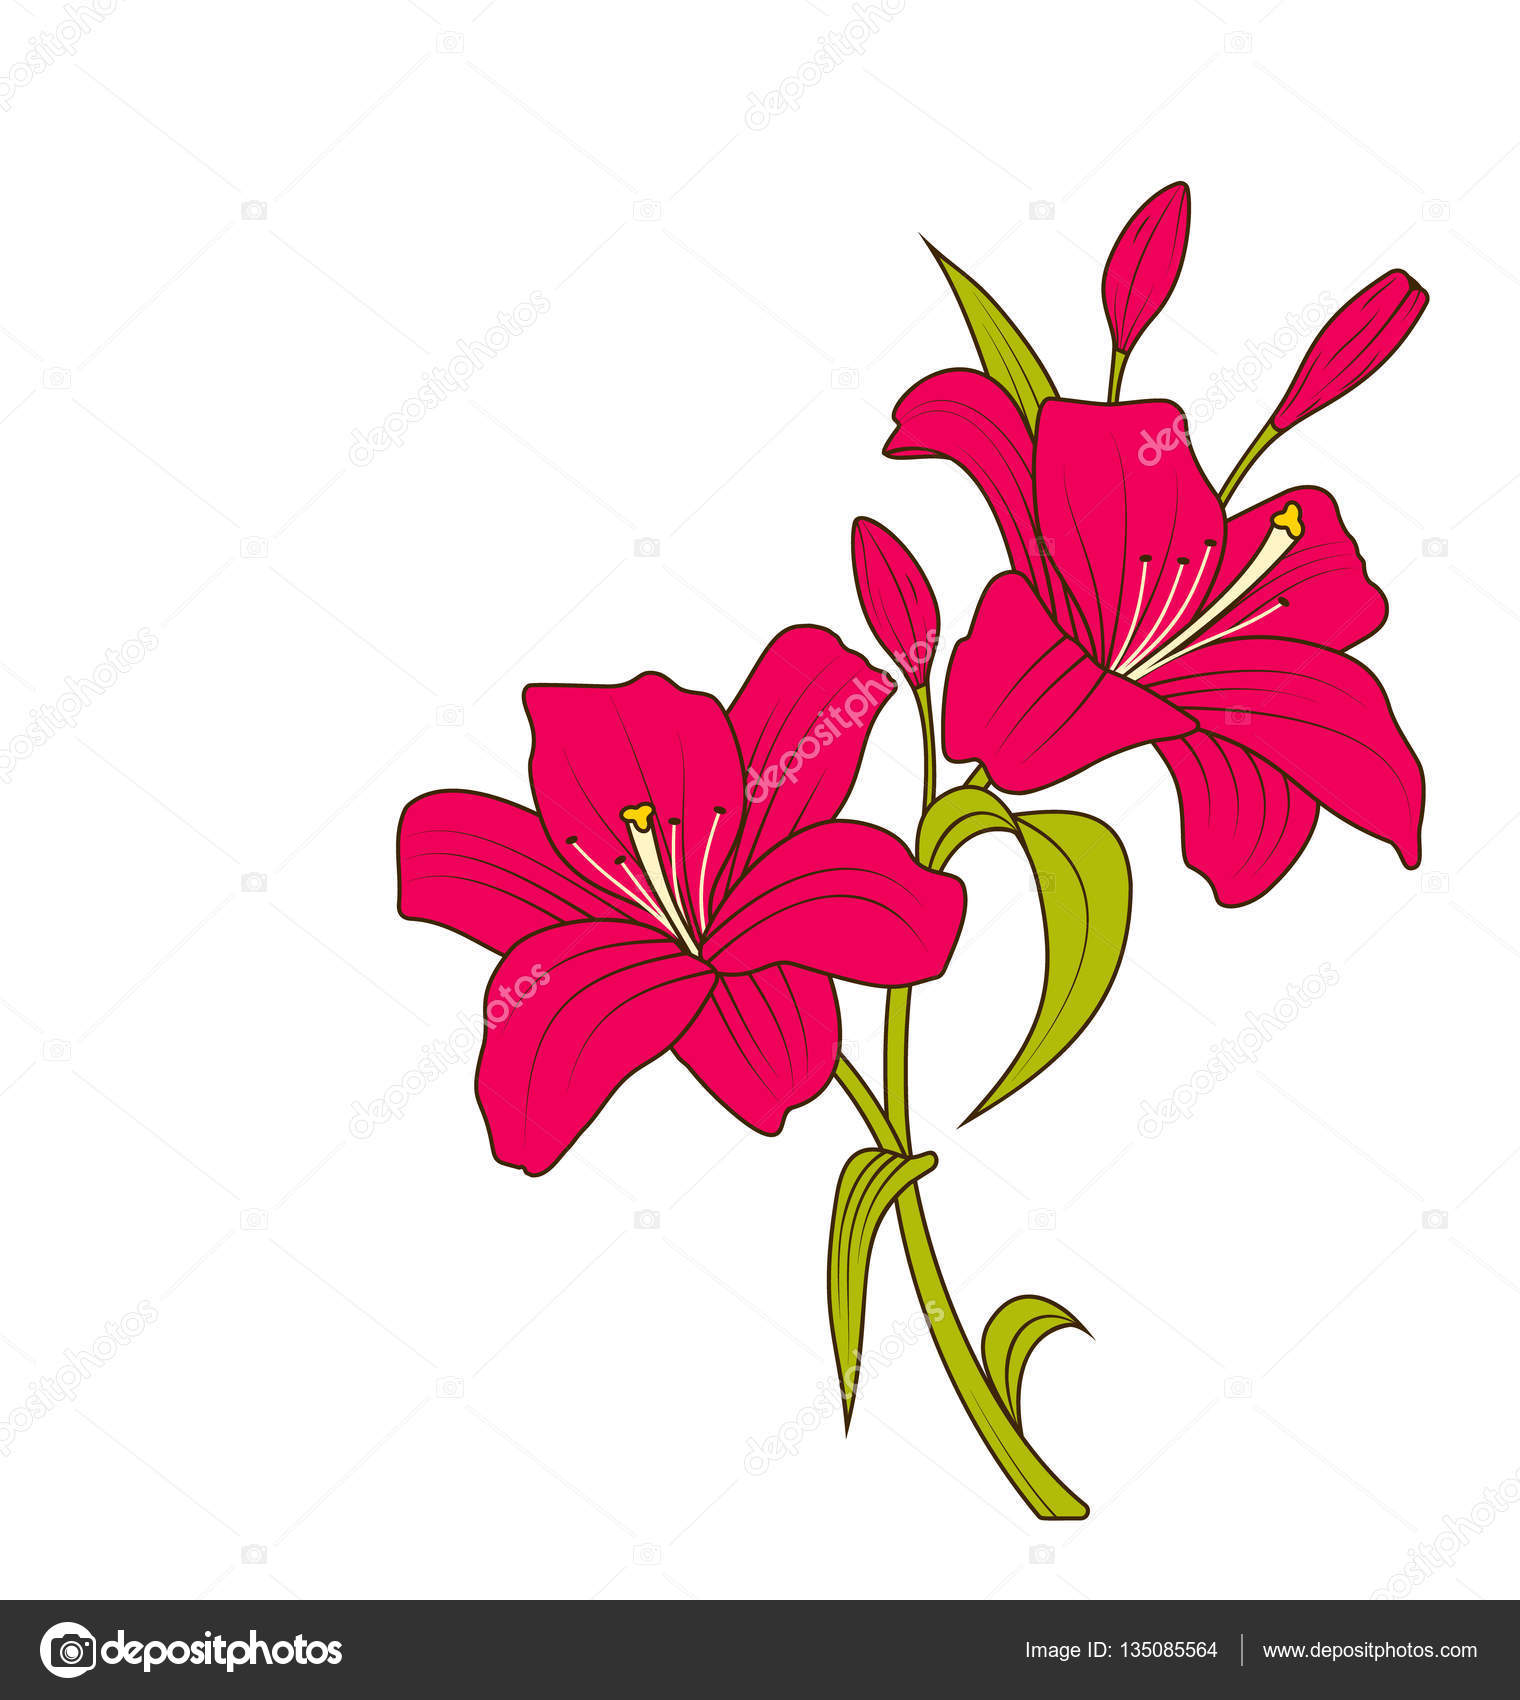 Linear colored sketch of beautiful lily flowers isolated on white linear colored sketch of beautiful lily flowers isolated on white background stock photo izmirmasajfo